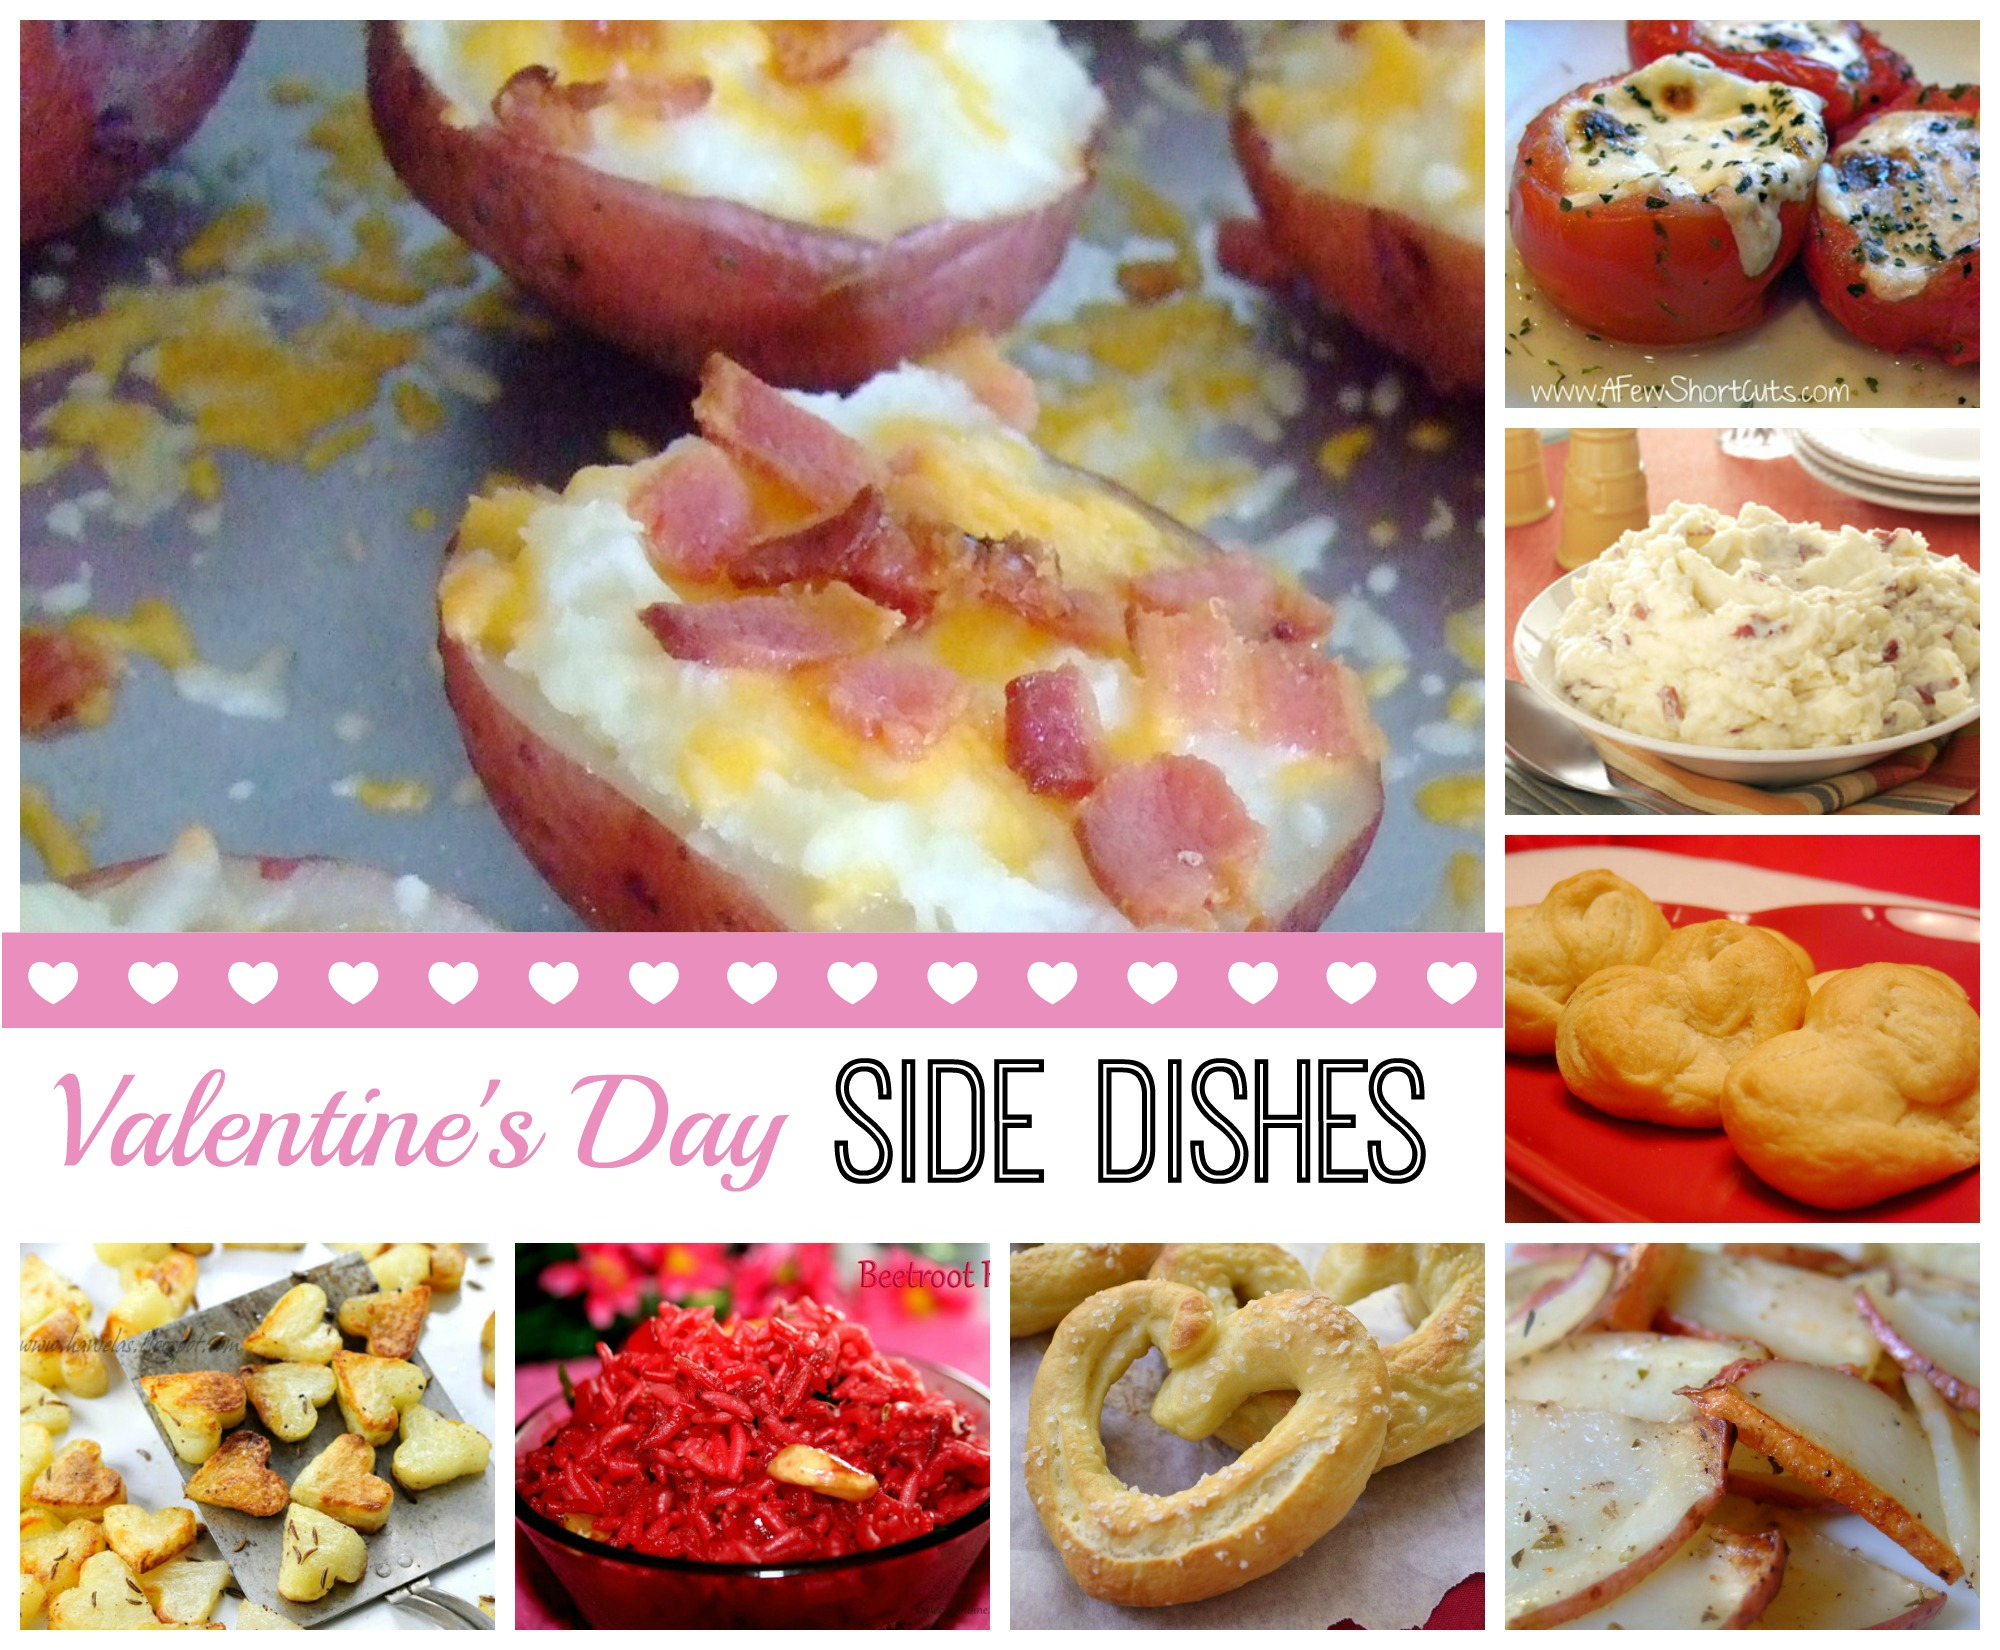 Valentine's Day Side Dish Ideas and Recipes